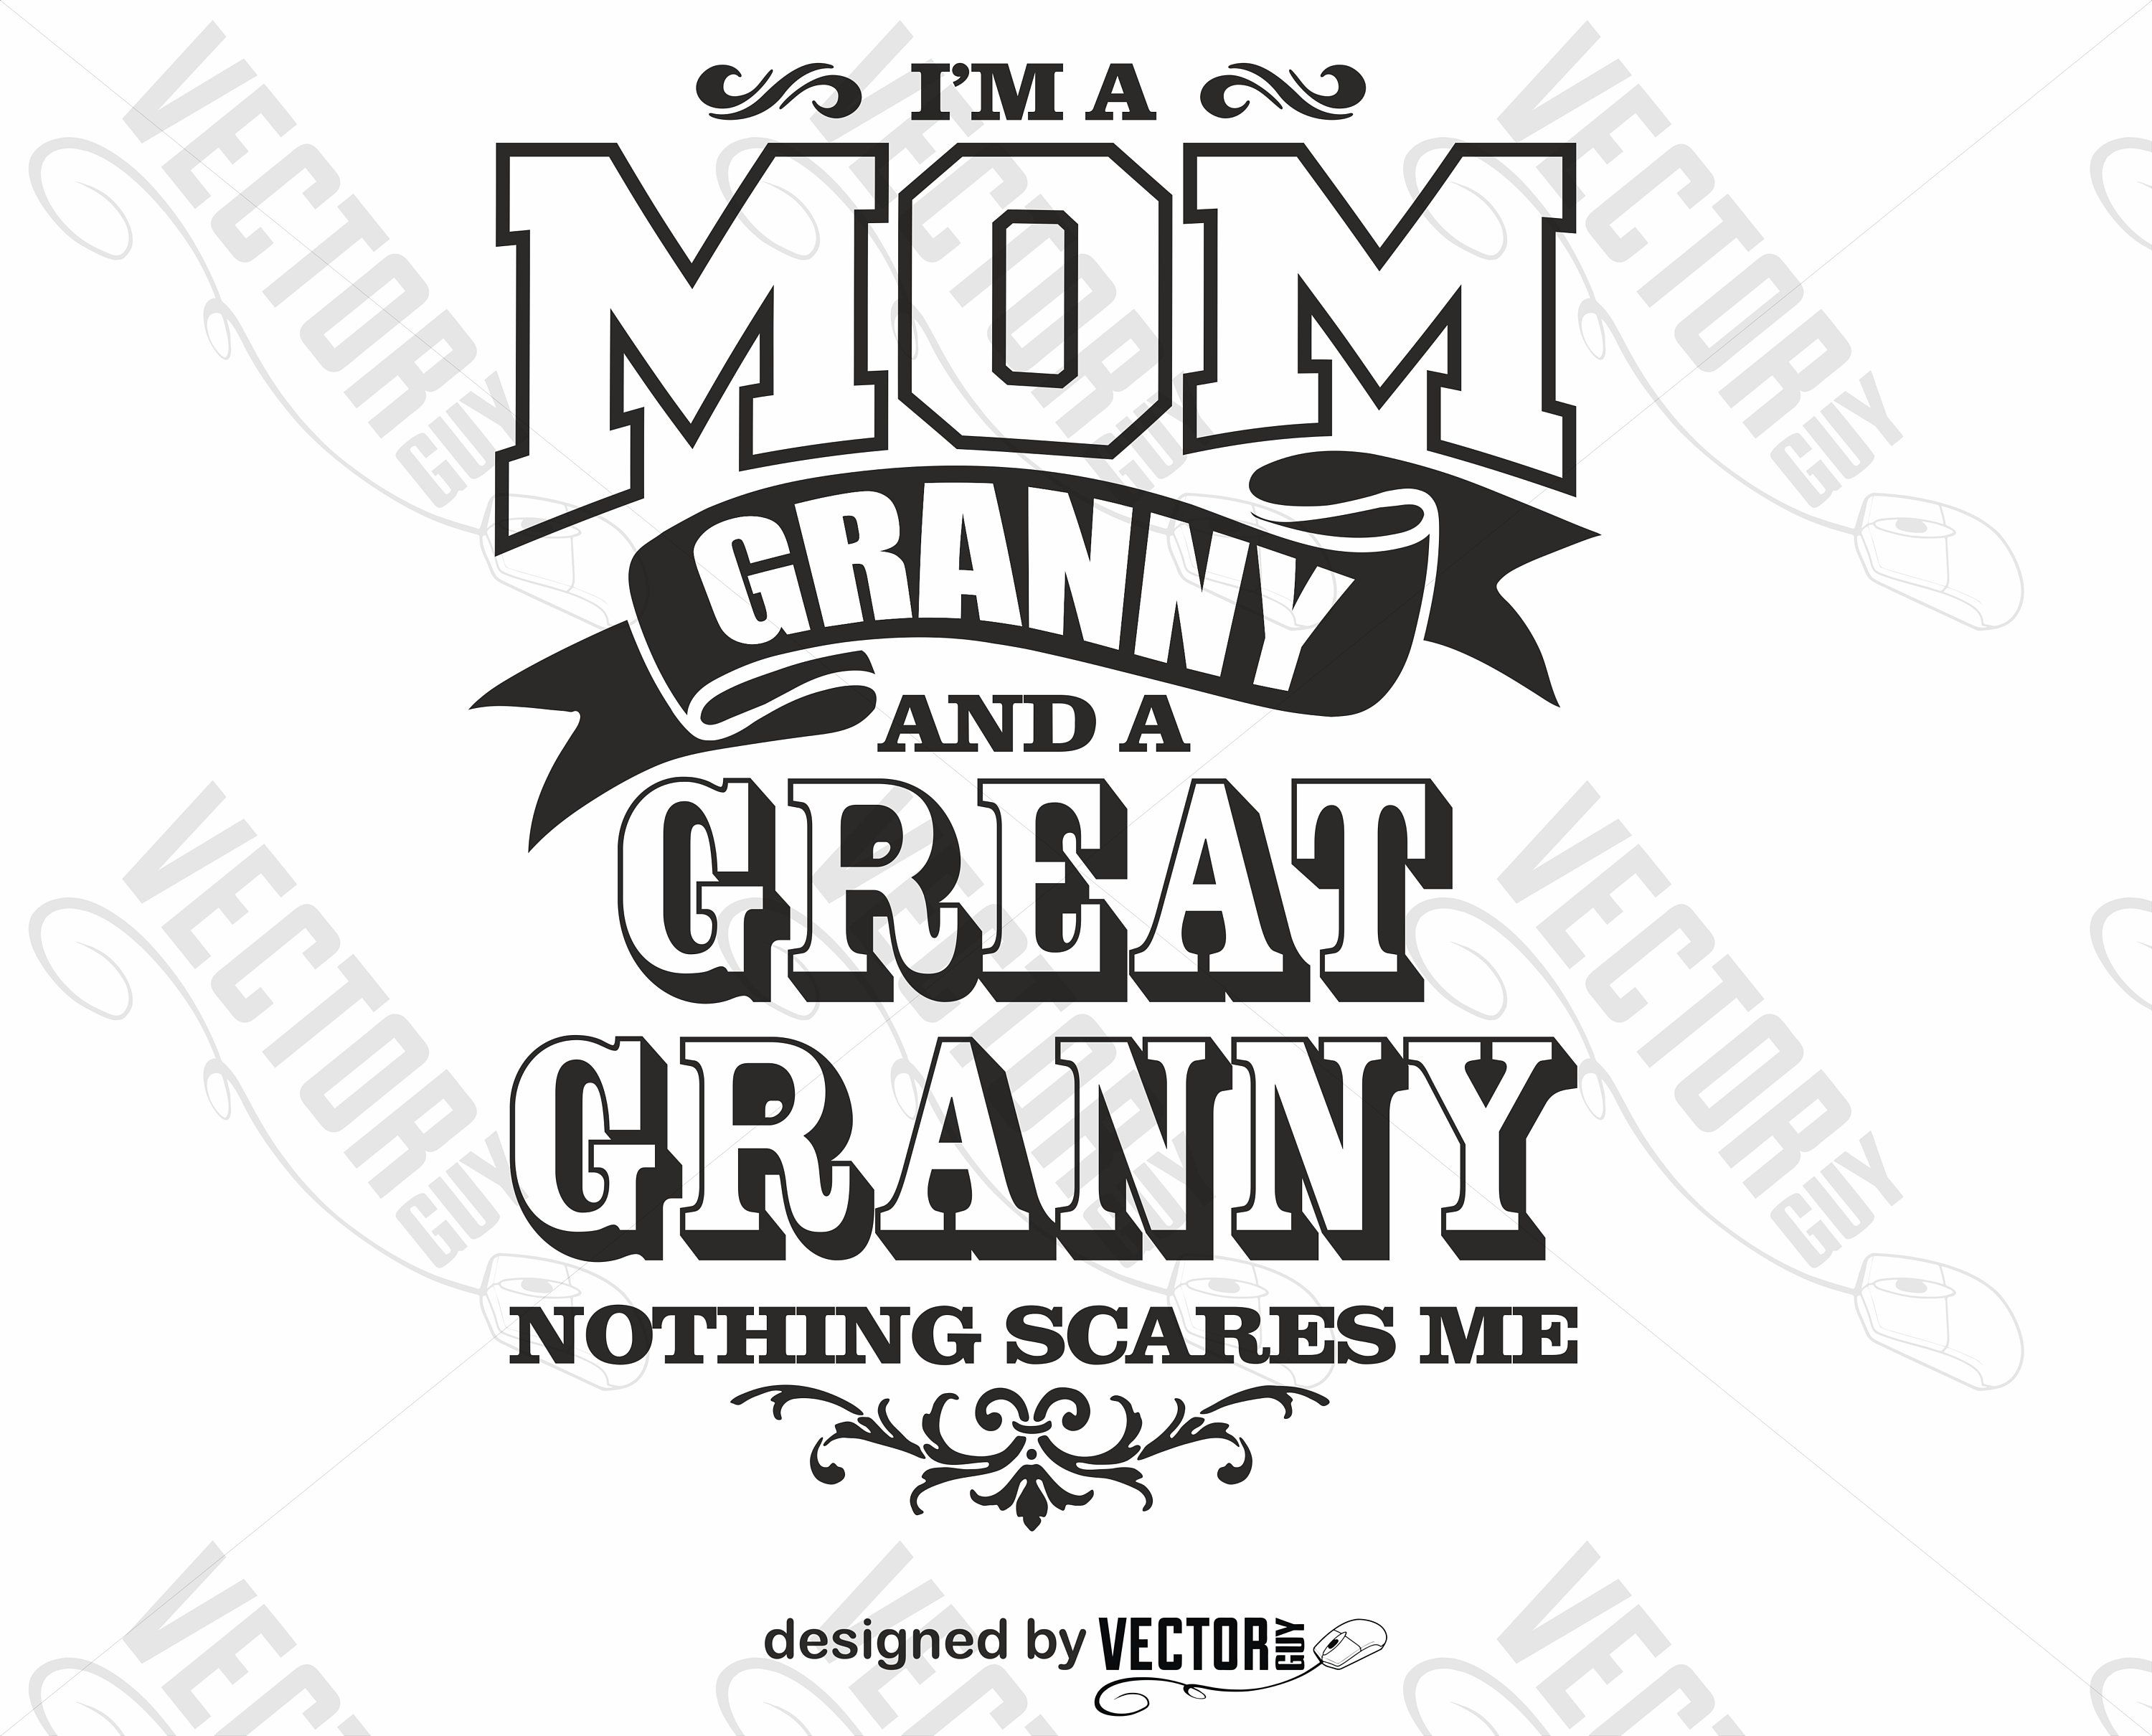 I'm a Mom Granny and a Great Granny Nothing Scares Me